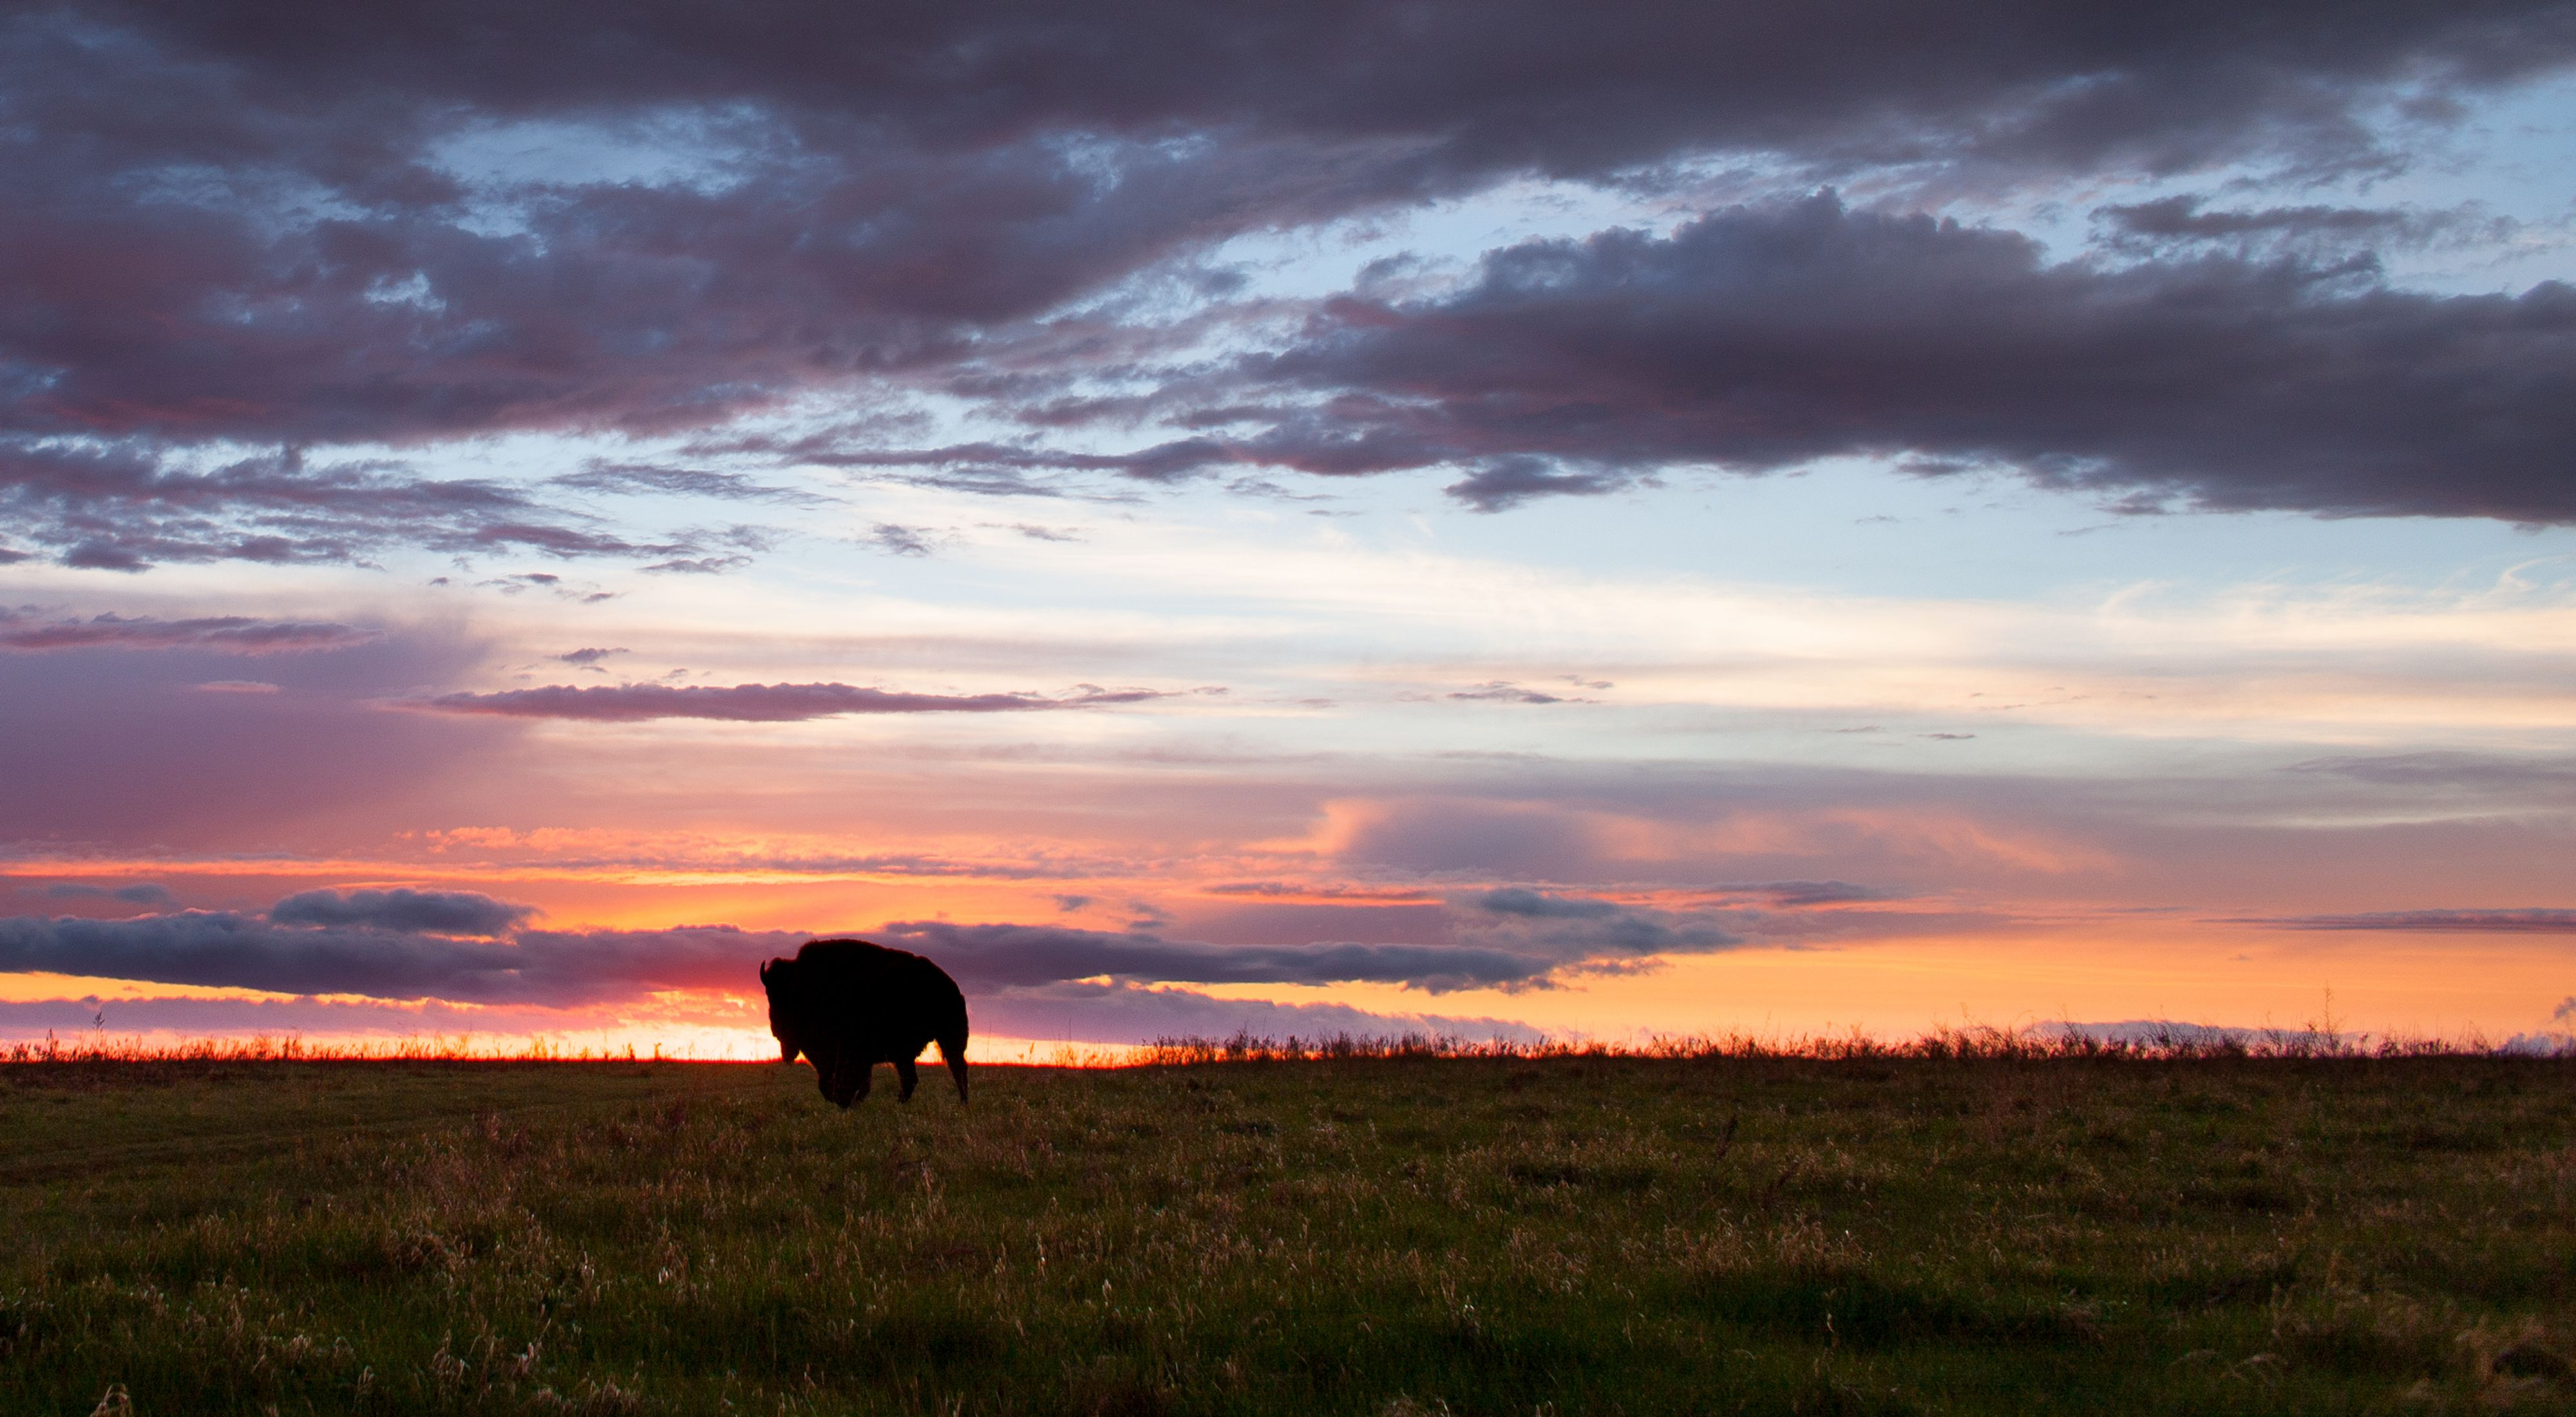 Silhouette of a bison on the prairie at sunset.